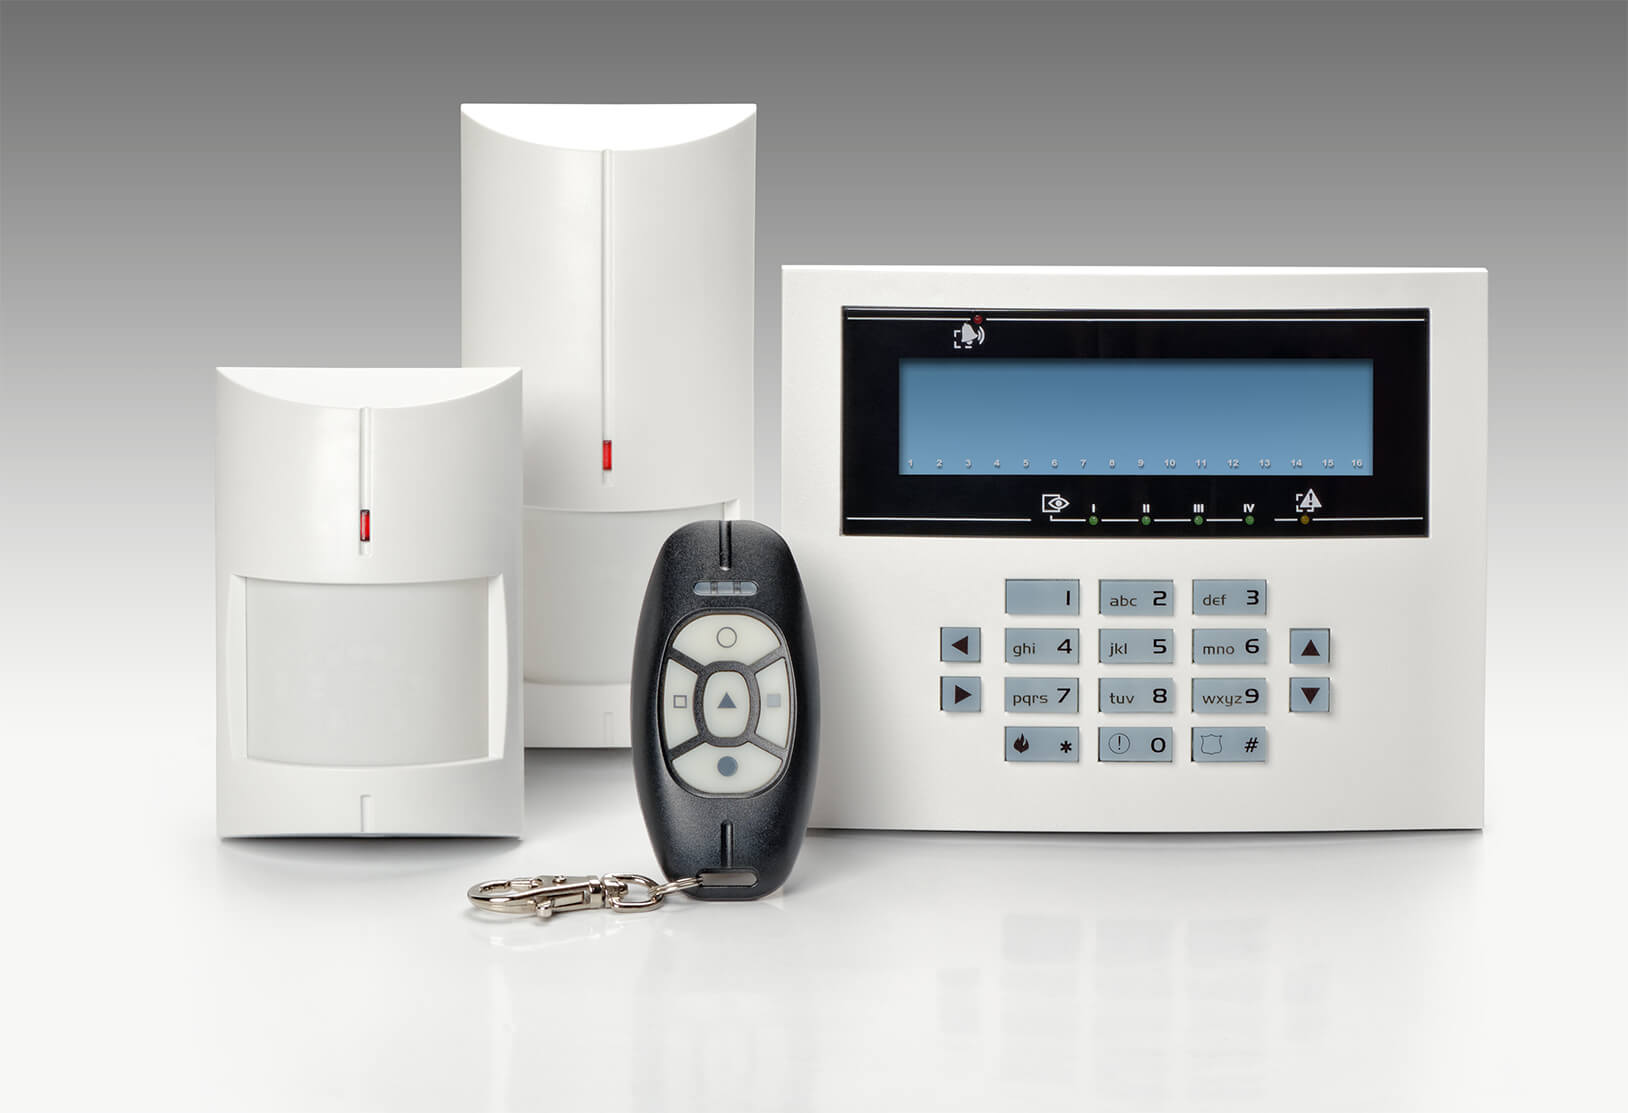 Business & Residential NACOSS Approved Burglar Alarms In Greenwich SE18 - Local Greenwich SE18 security company.Call 02078872244 - Dedicated to Safety & Security. Companies, shops and homes ..